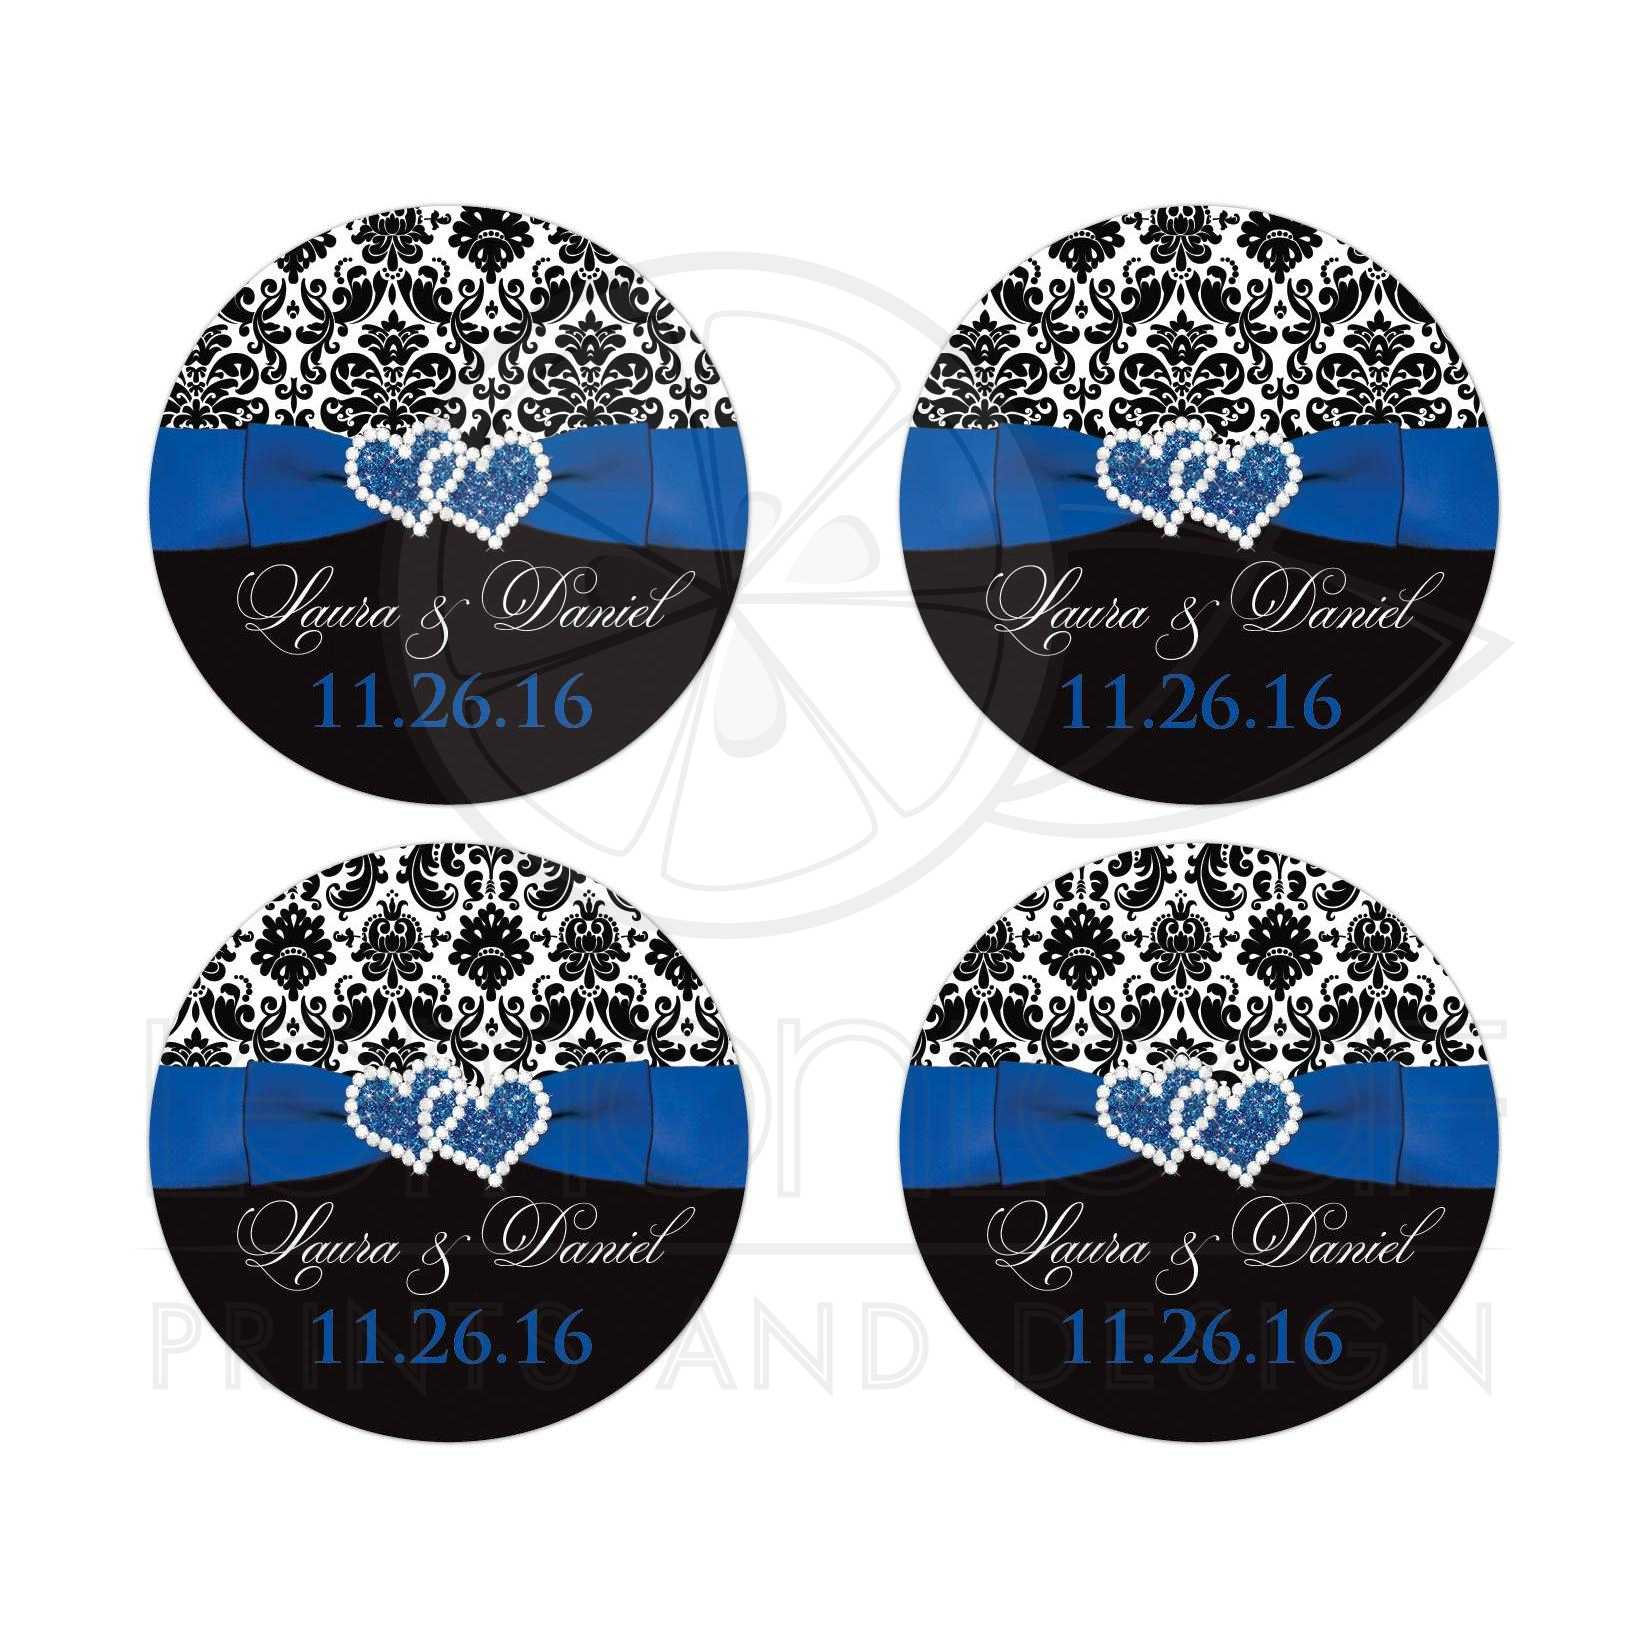 Best Royal Blue Black And White Damask Wedding Favor Stickers With Ribbon Bow